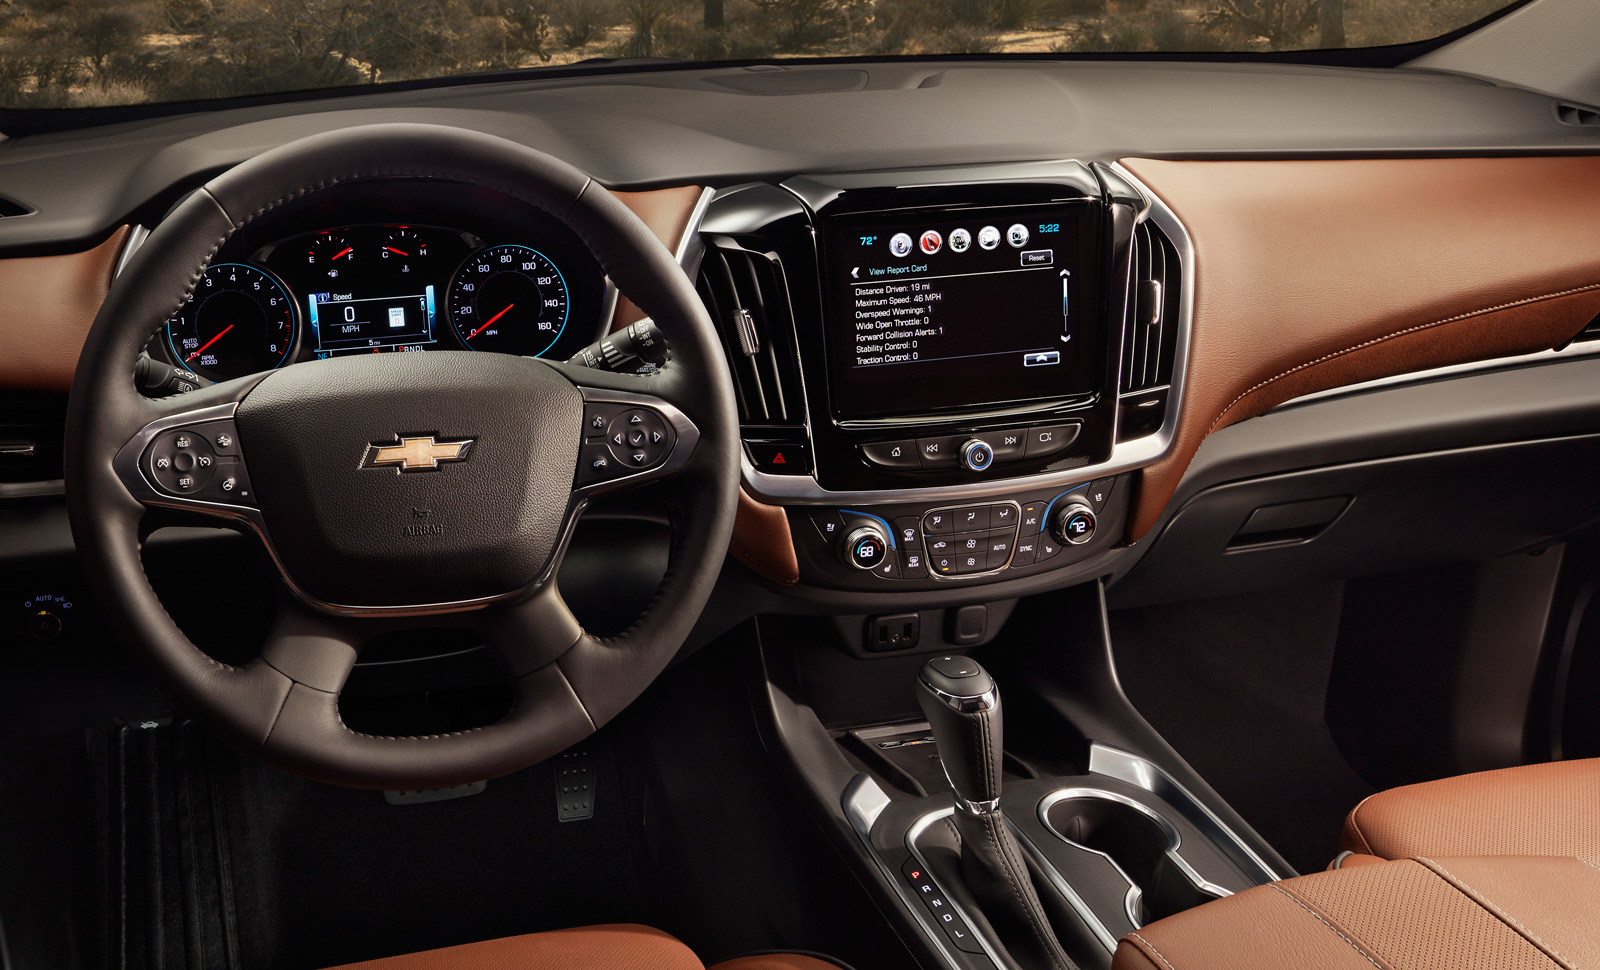 built for style and purpose inside and out the completely redesigned 2018 traverse offers